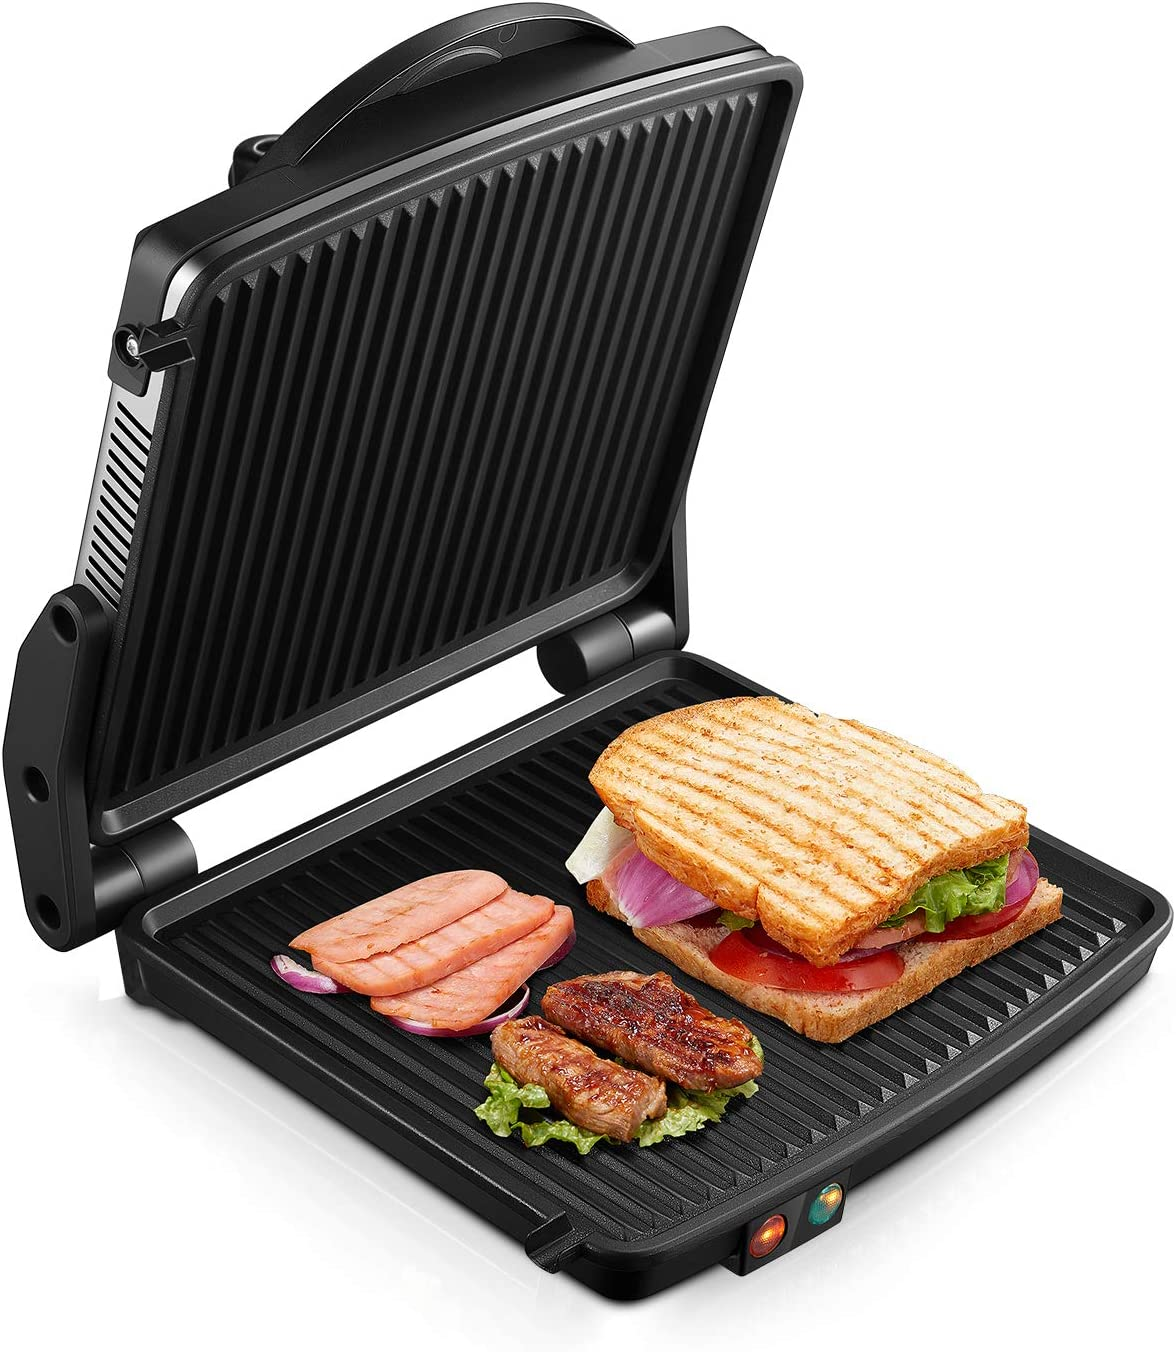 Kealive Panini Press Grill, 4-Slice Extra Large Gourmet Sandwich Maker Grill, Non-Stick Coated Plates, Opens 180 Degrees to Fit Any Type or Size of Food, Stainless Steel Surface and Drip Tray, 1200W